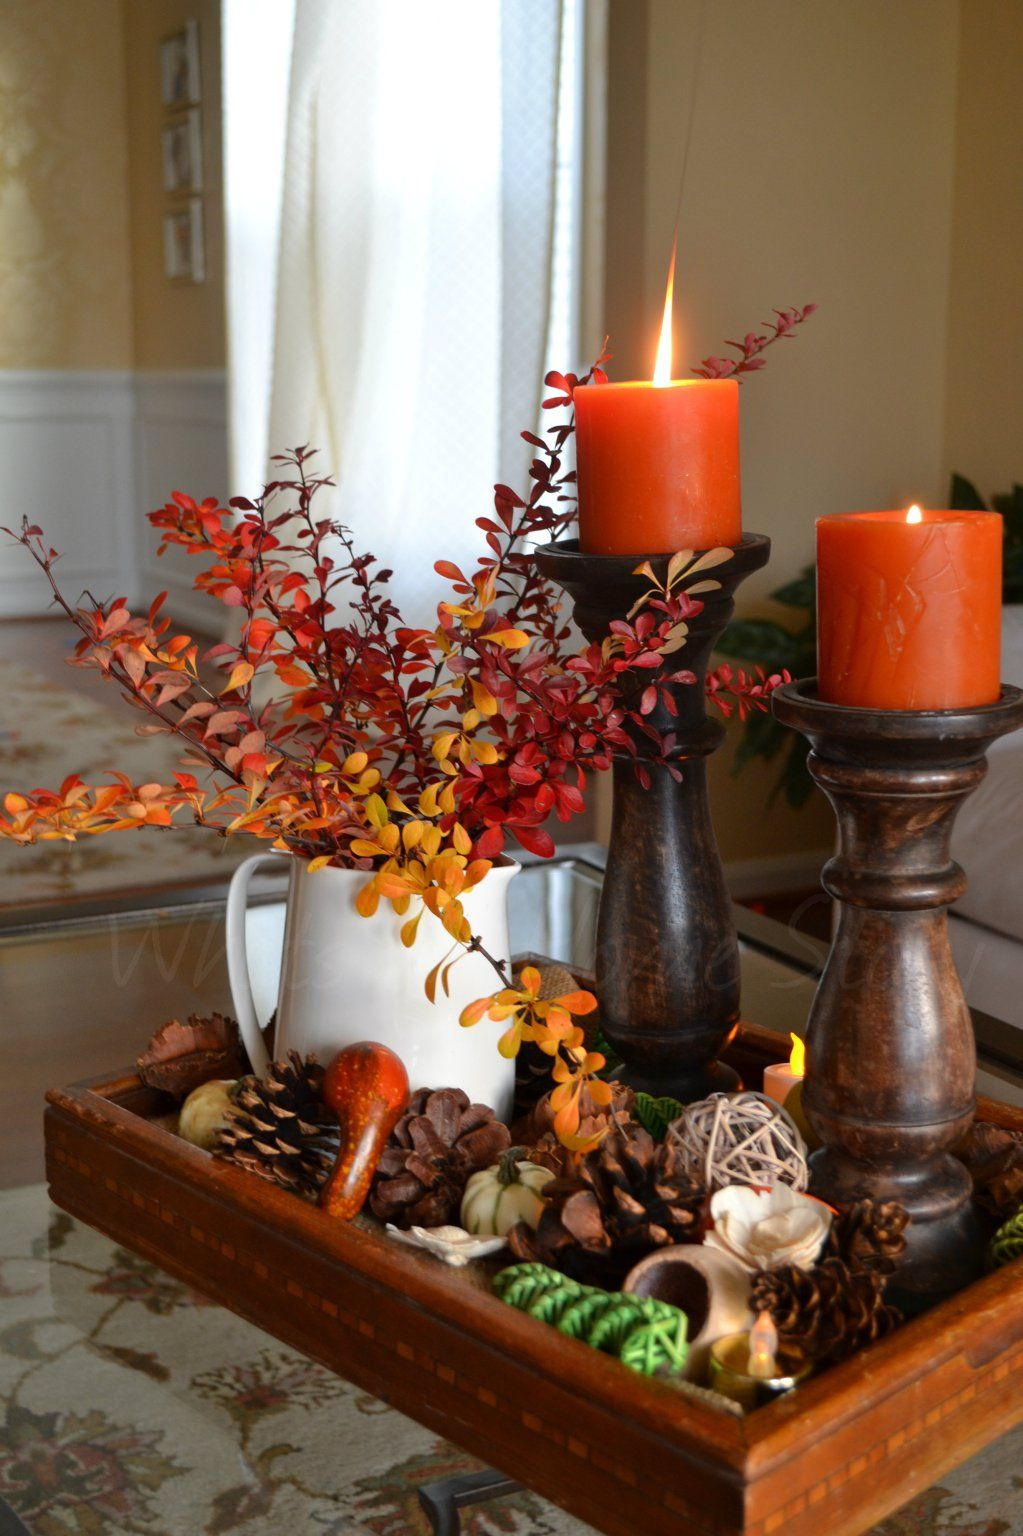 20 clever thanksgiving table decorations thanksgiving diy frugal 20 clever thanksgiving table decorations whats ur home story thanksgiving diythanksgiving solutioingenieria Images